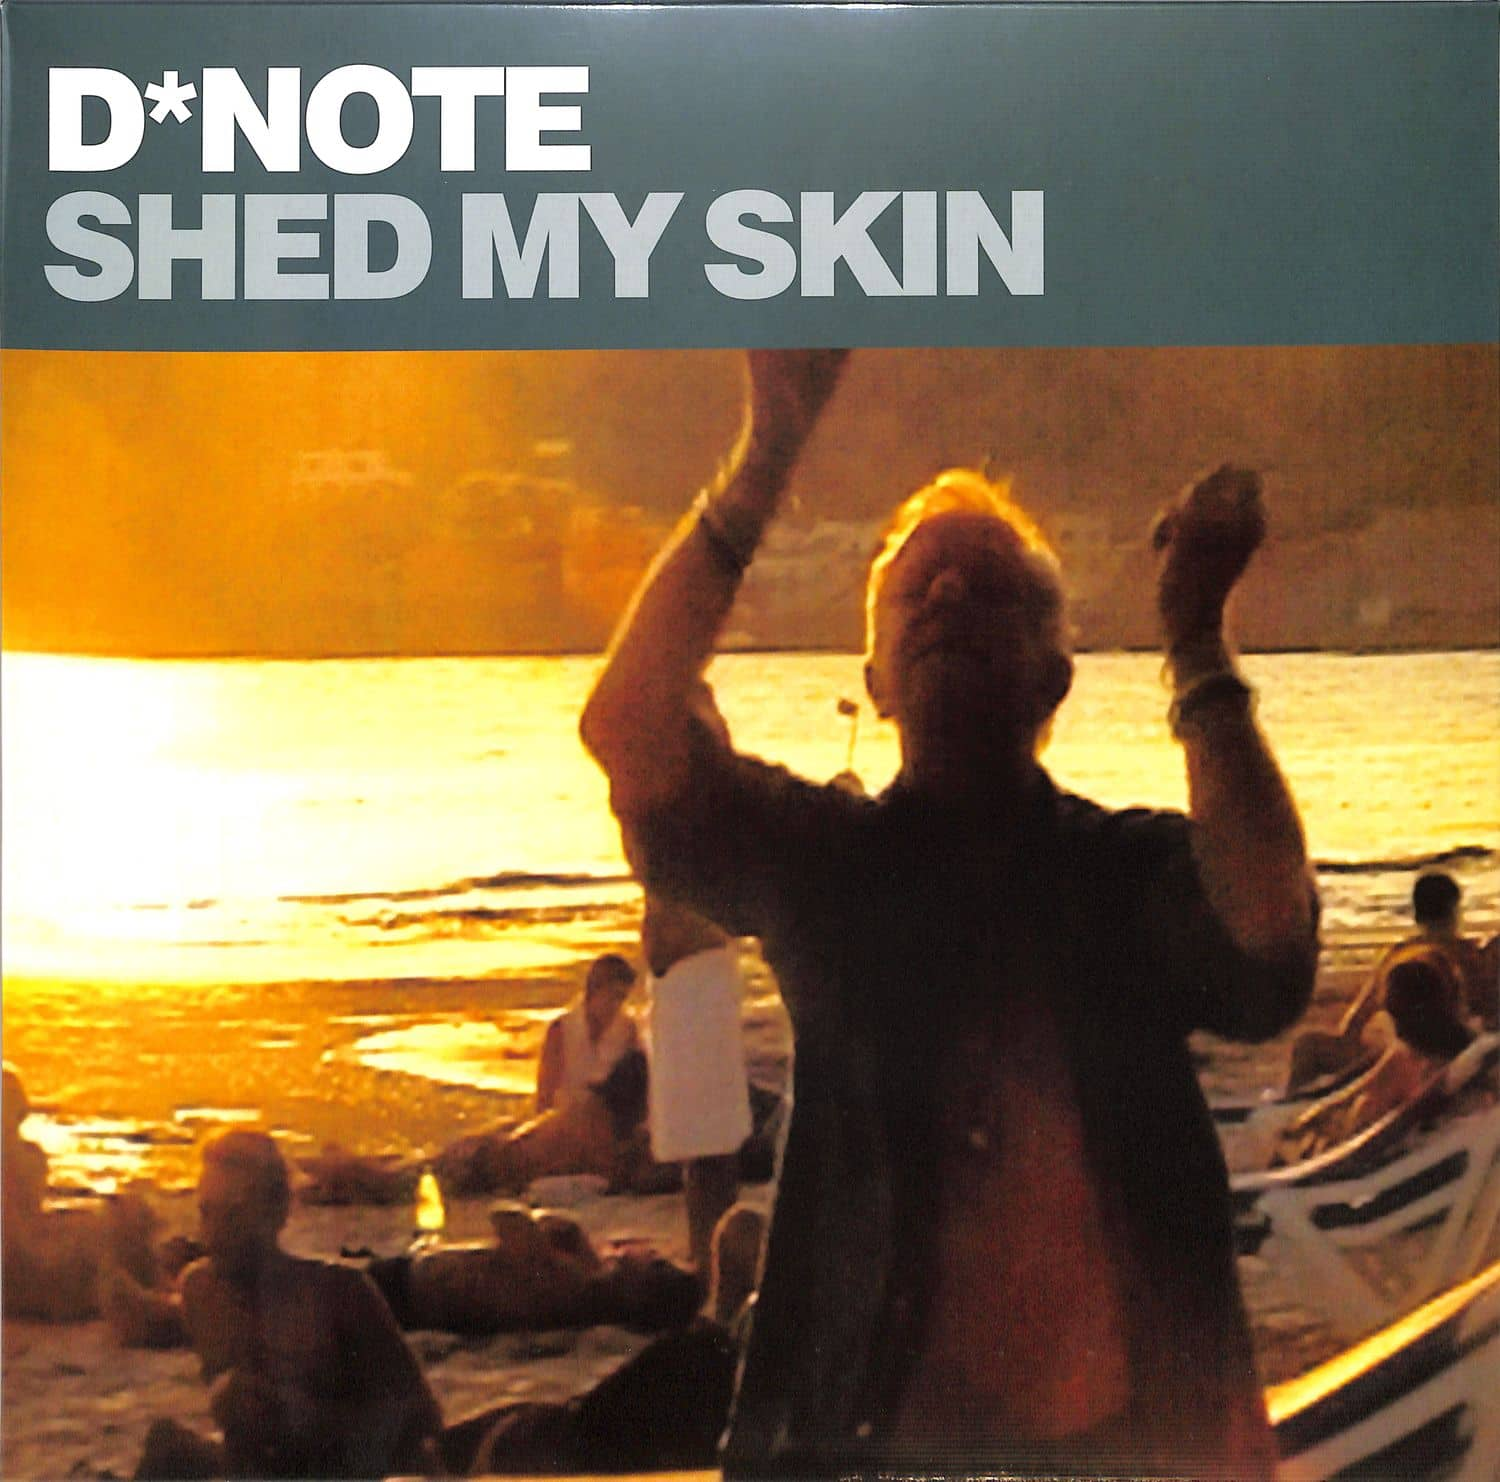 D Note - SHED MY SKIN